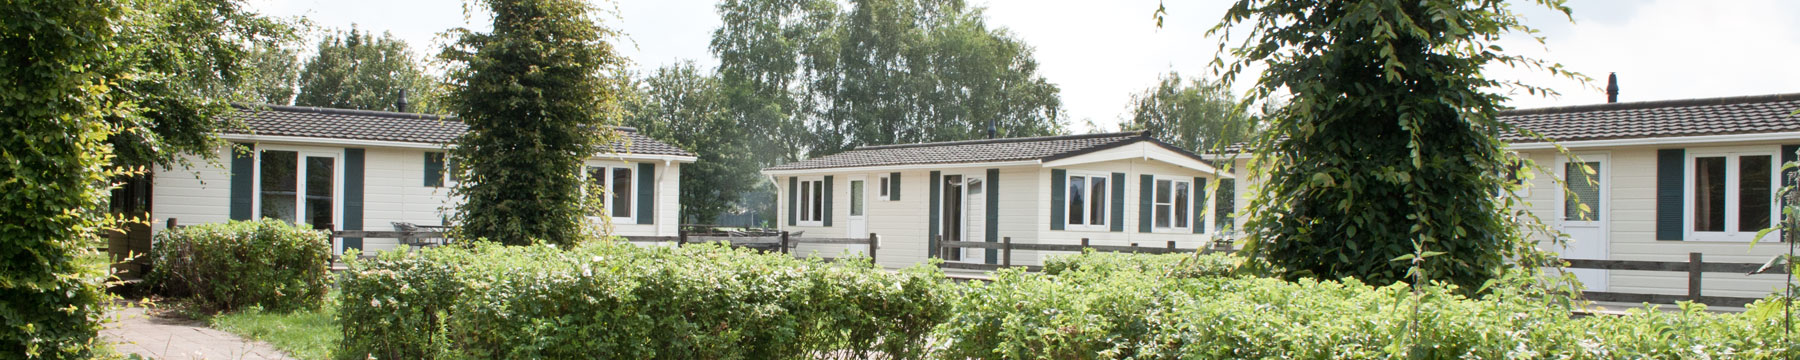 headervisual-bungalows-1